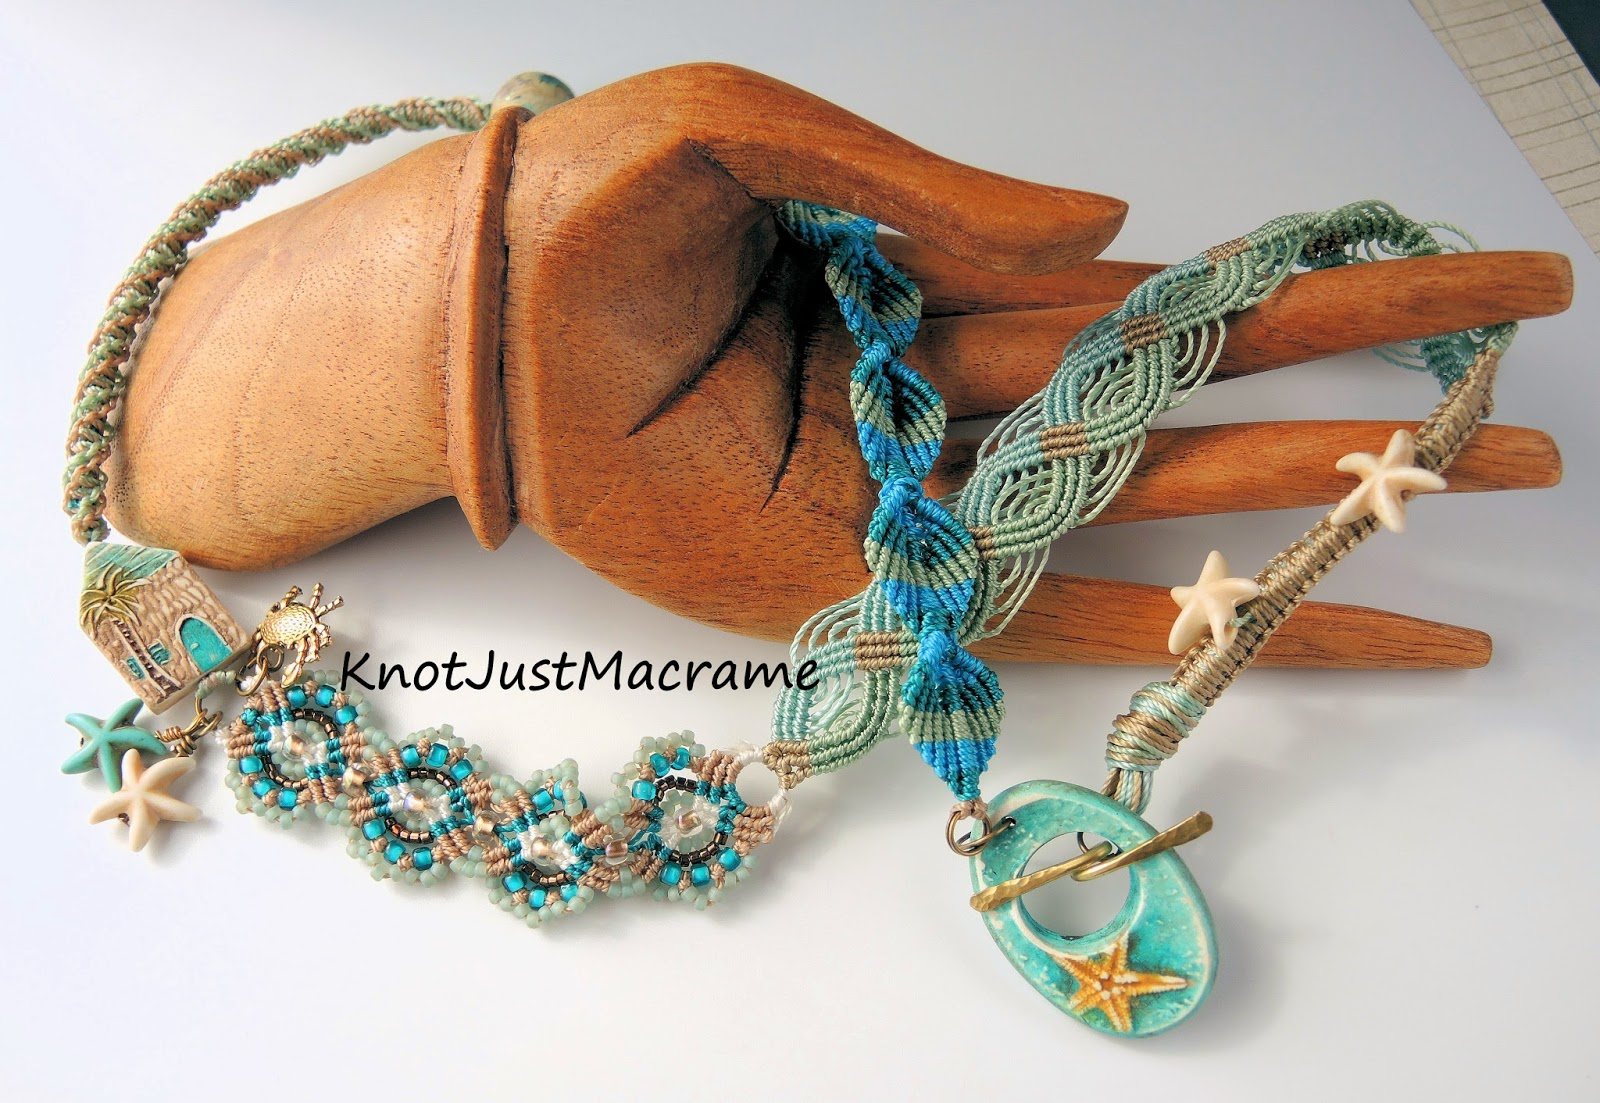 Beach and ocean themed micro macrame wrap bracelet by Sherri Stokey.